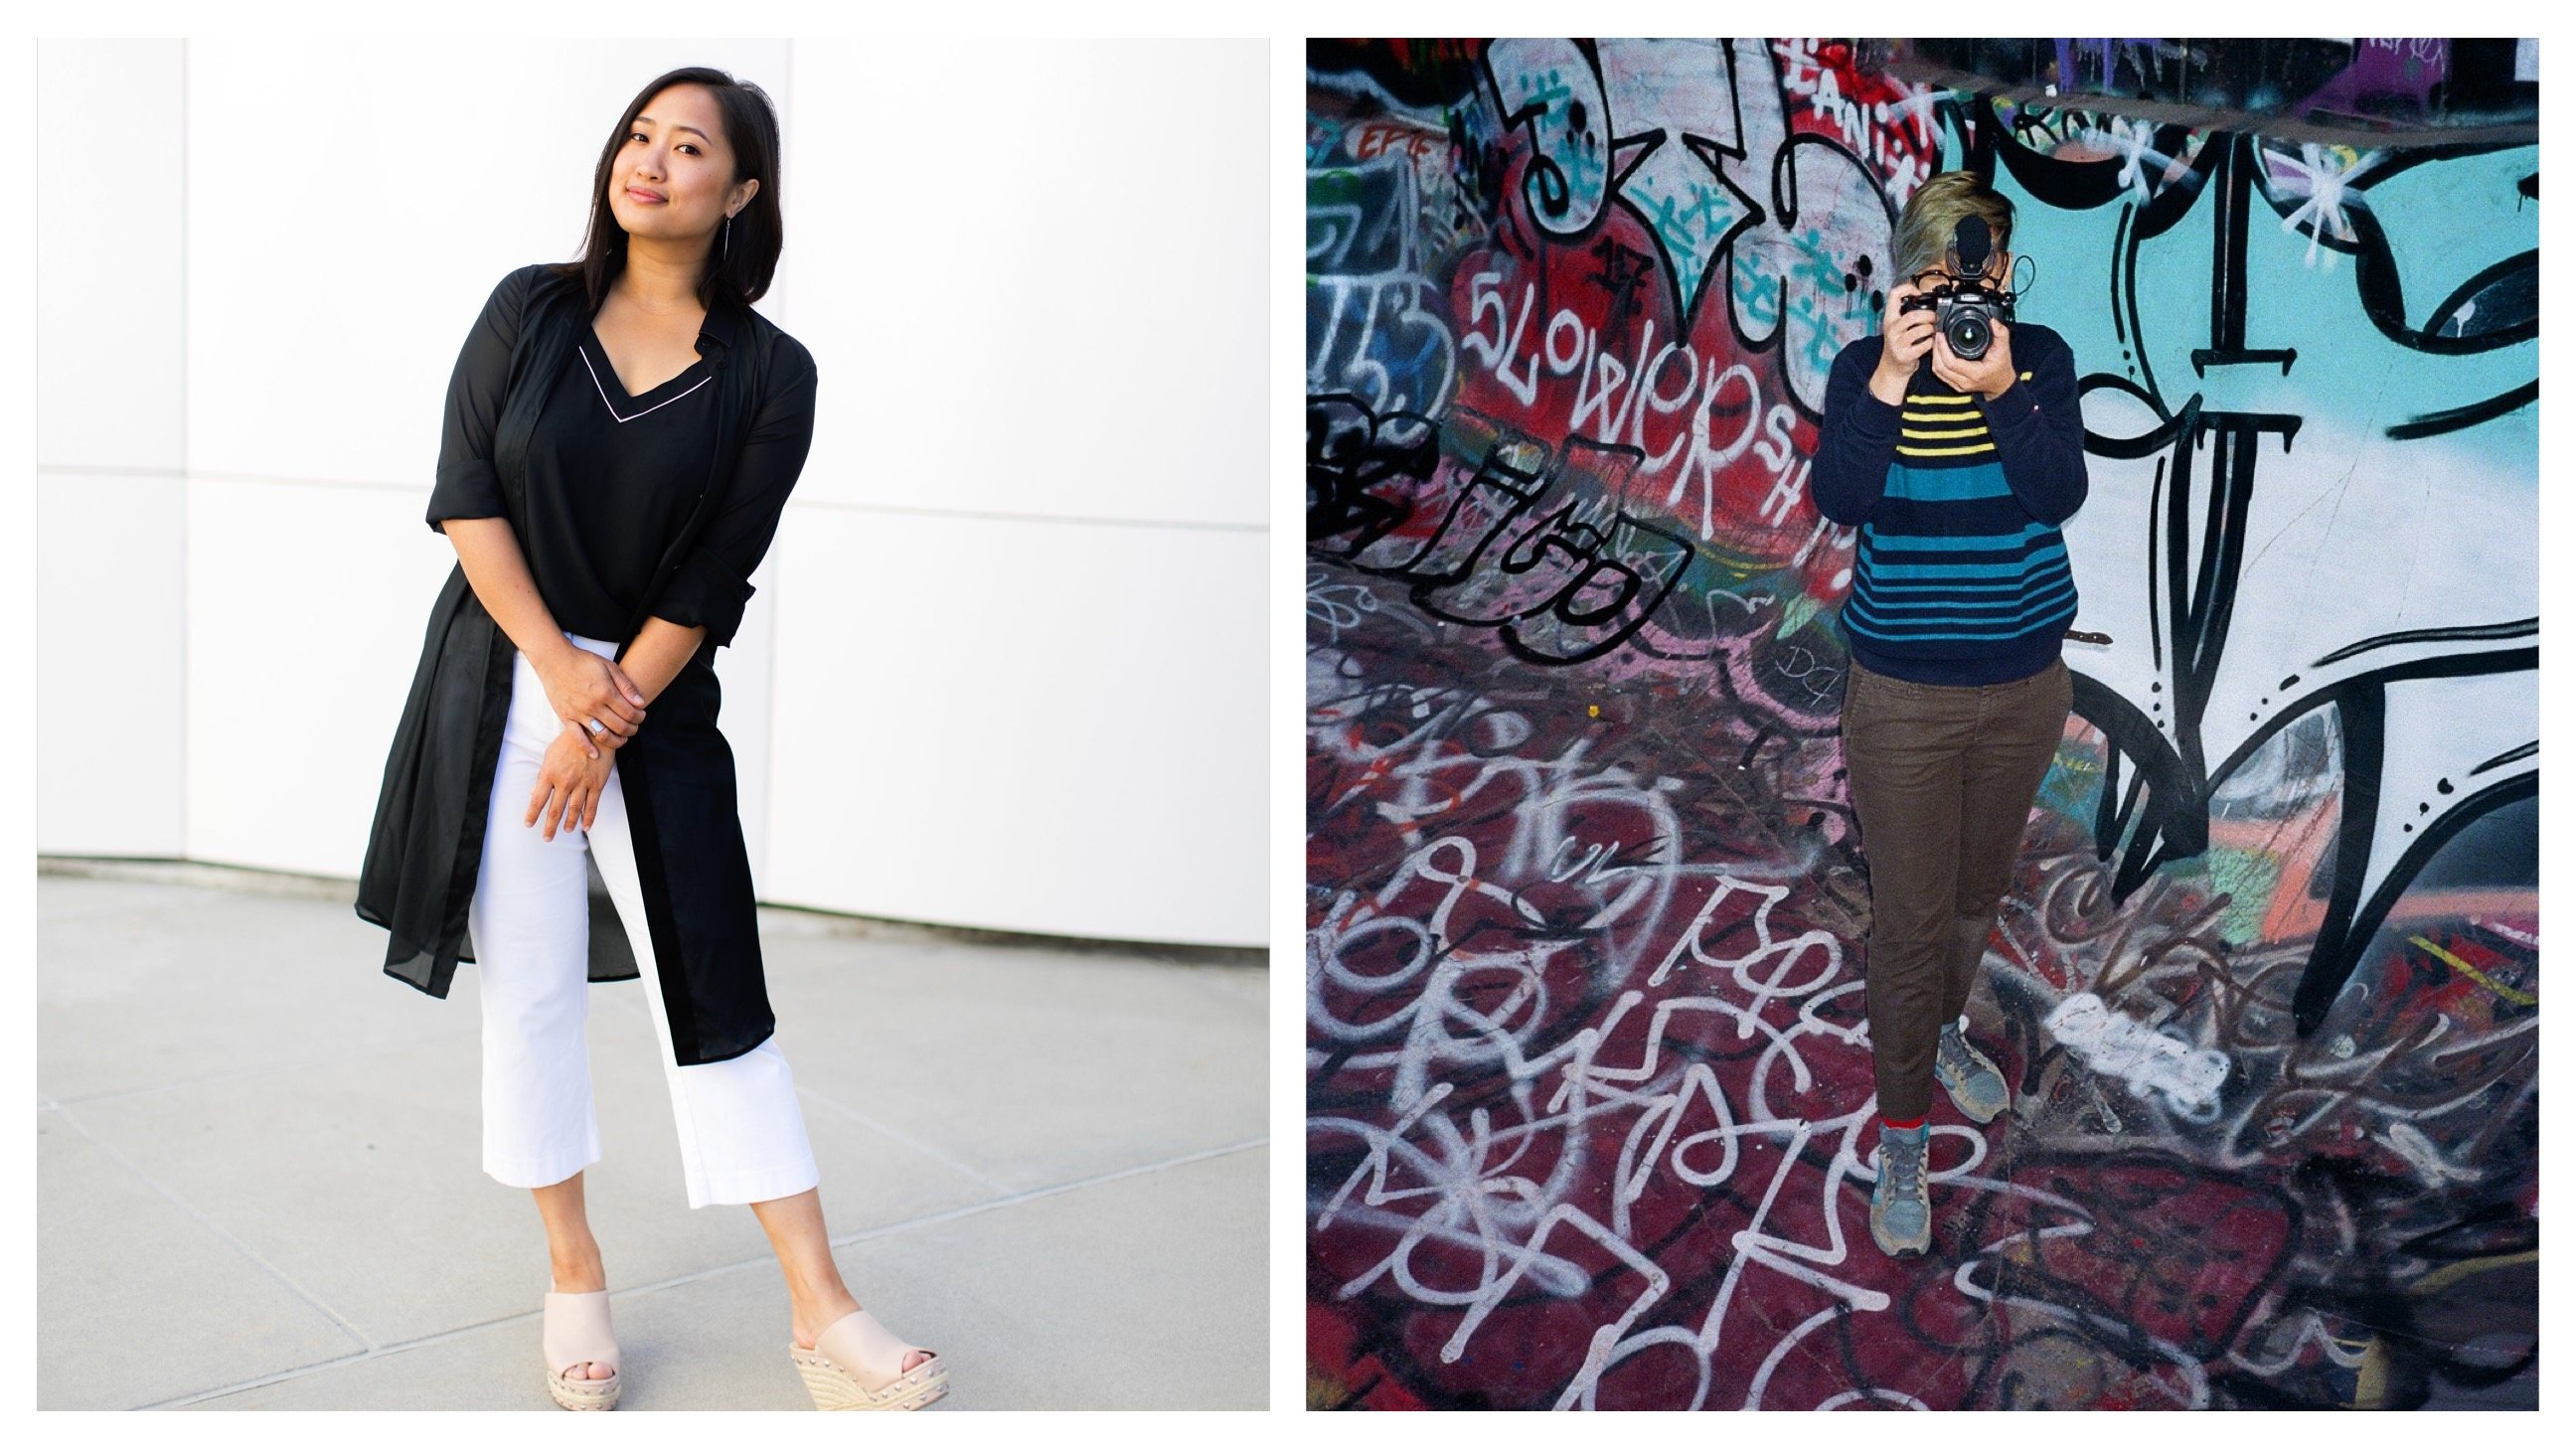 A young Southeast Asian woman smiles on the left and on the right is a young person with short blonde hair standing in front of a graffiti'ed wall holding a camera in front.